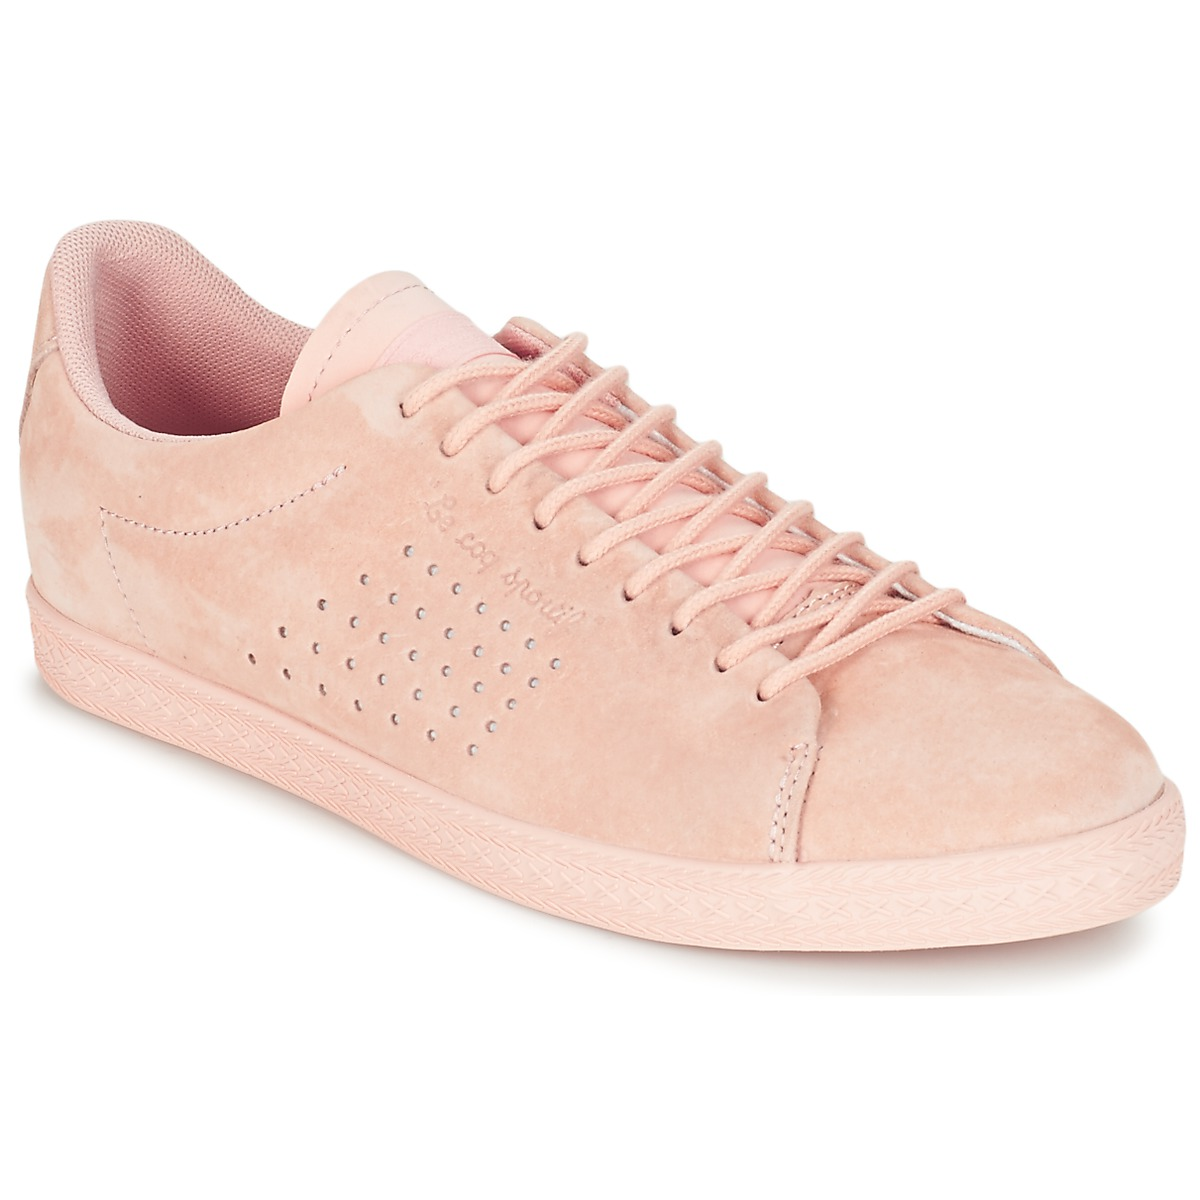 le coq sportif charline nubuck pink fast delivery with spartoo europe shoes low top. Black Bedroom Furniture Sets. Home Design Ideas